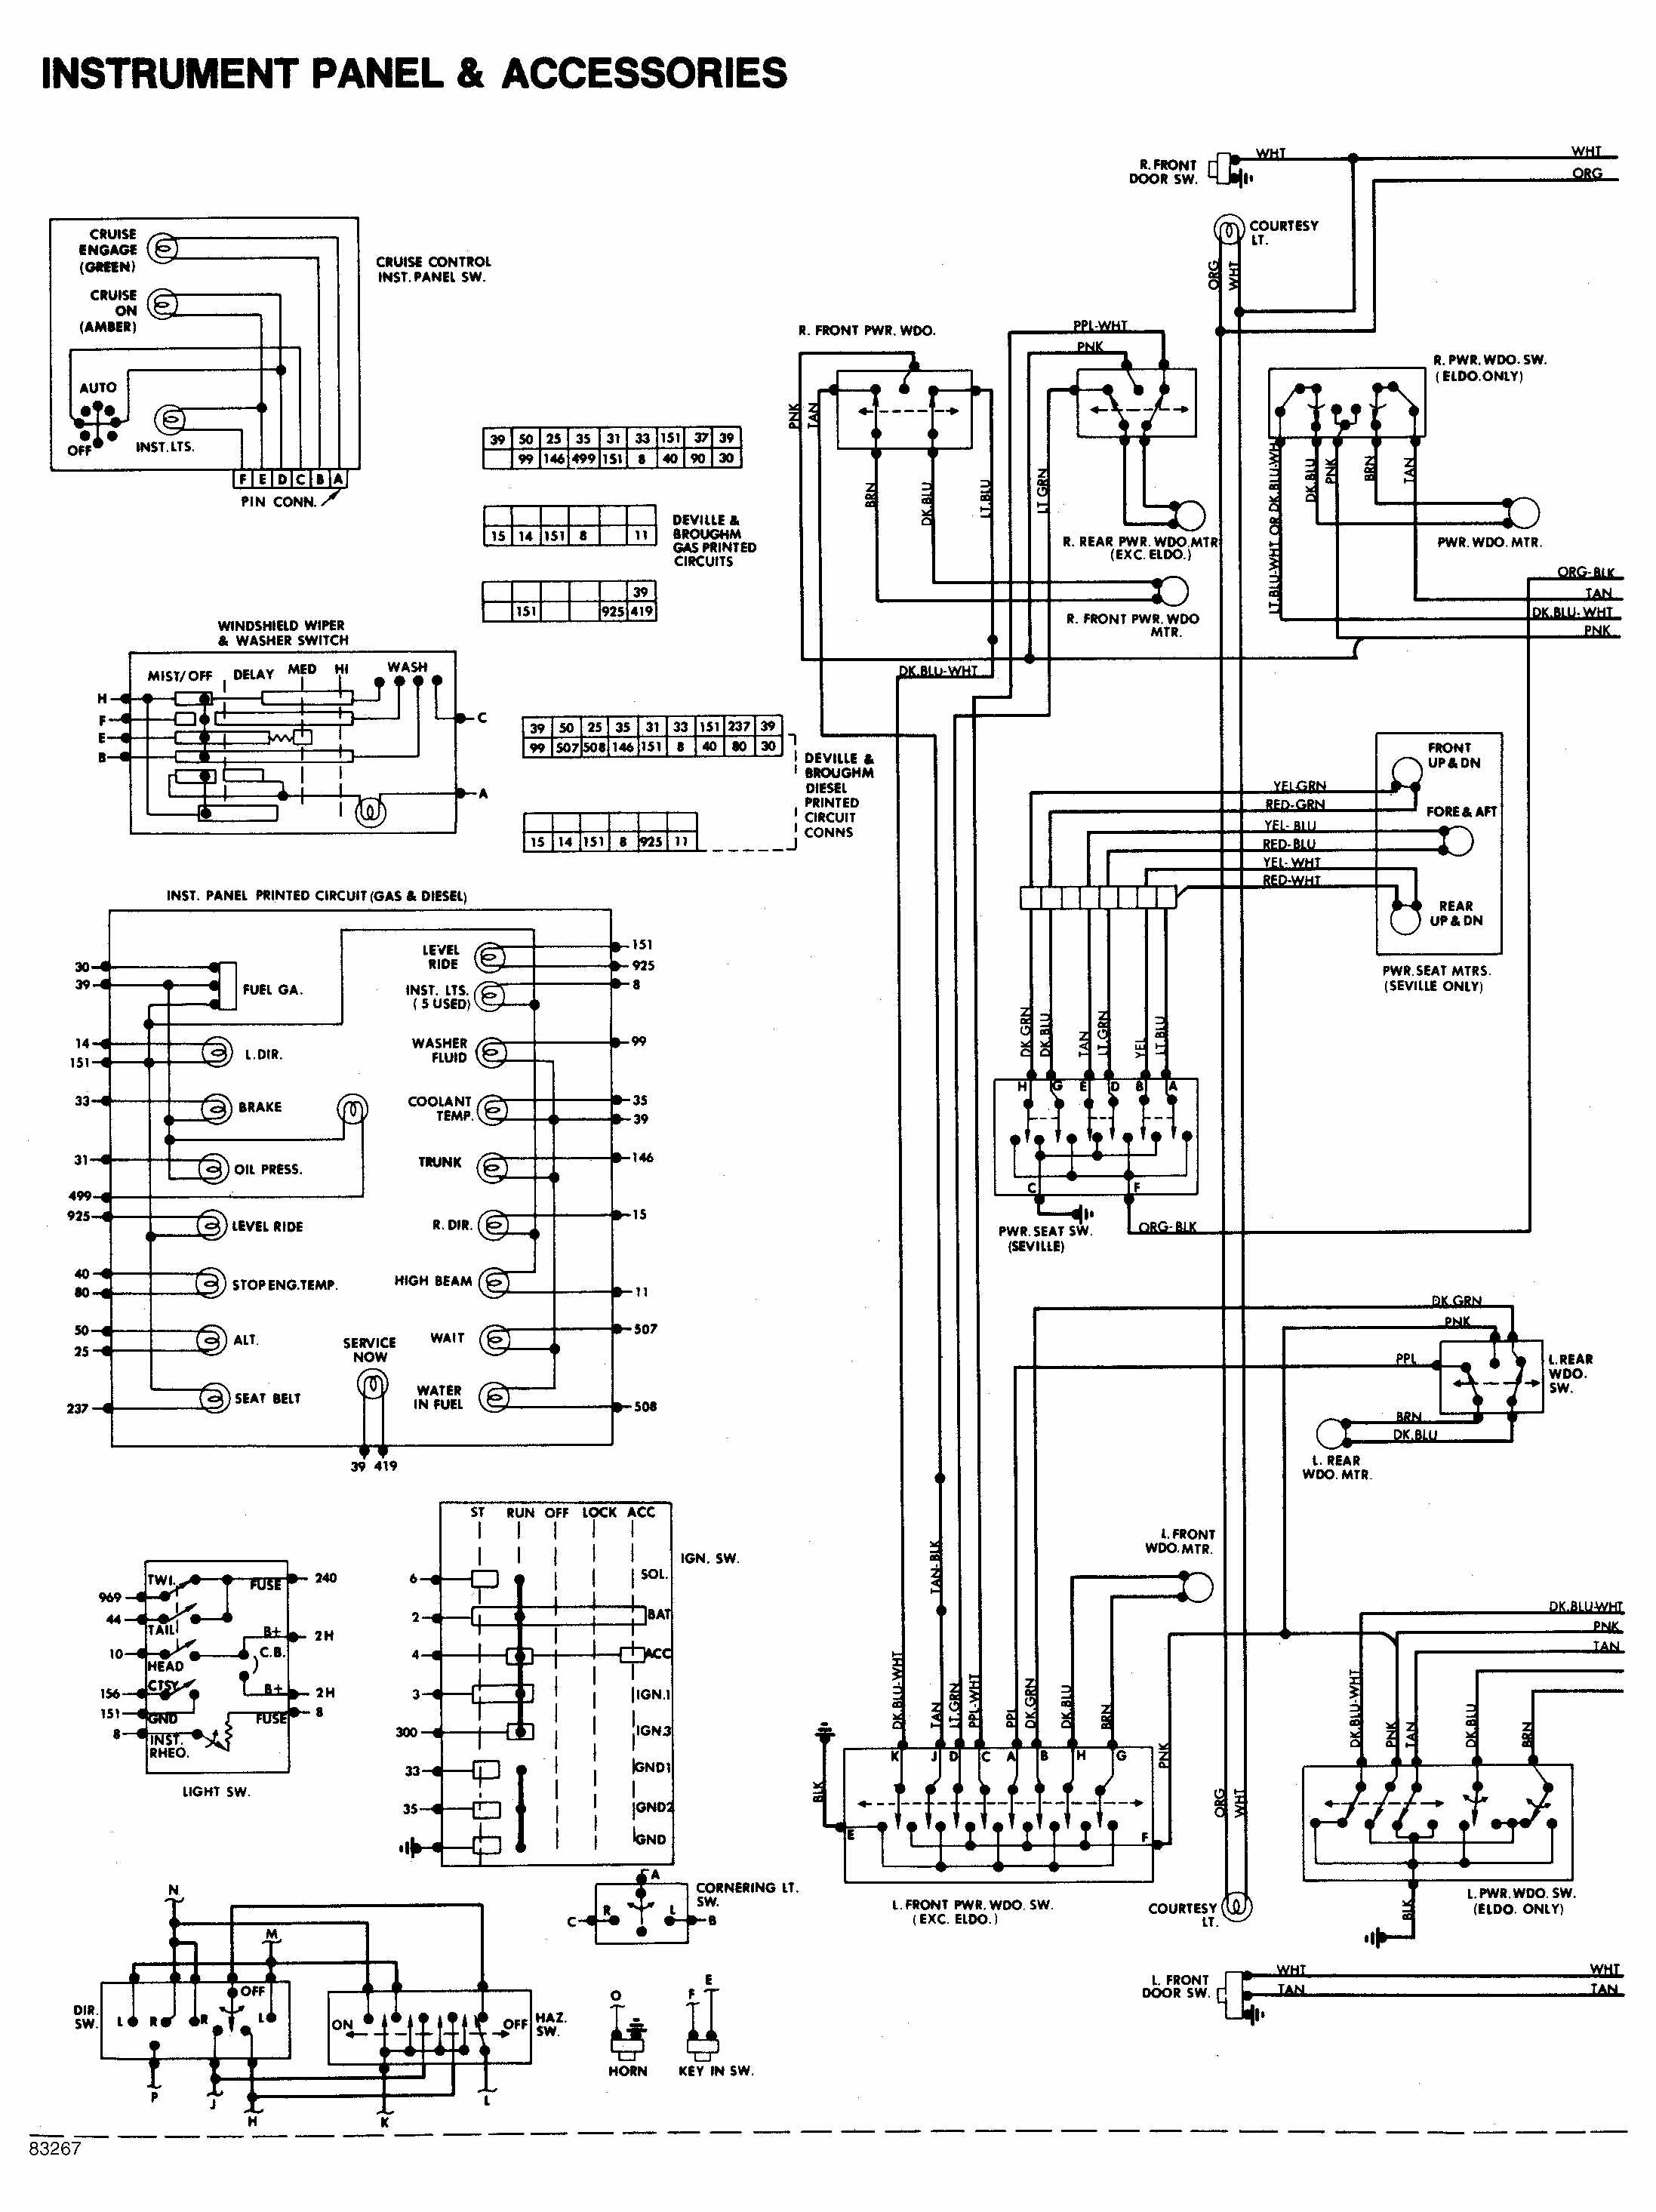 instrument panel and accessories wiring diagram of 1984 cadillac deville cadillac eldorado wiring harness wiring diagram simonand 1997 cadillac eldorado wiring diagram at soozxer.org